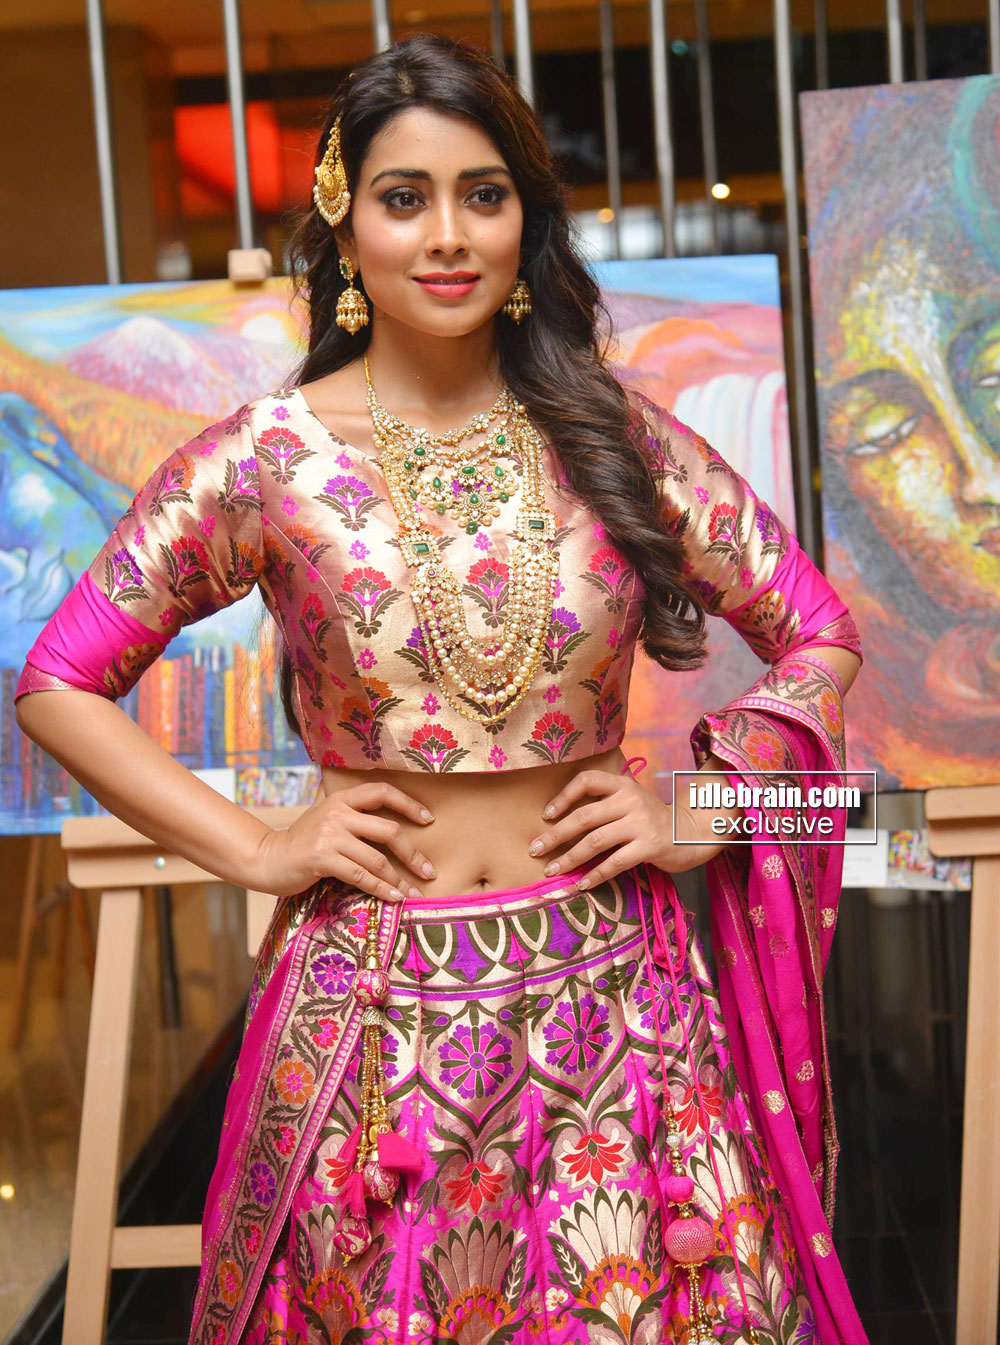 Shriya Saran photo gallery - Telugu cinema actress